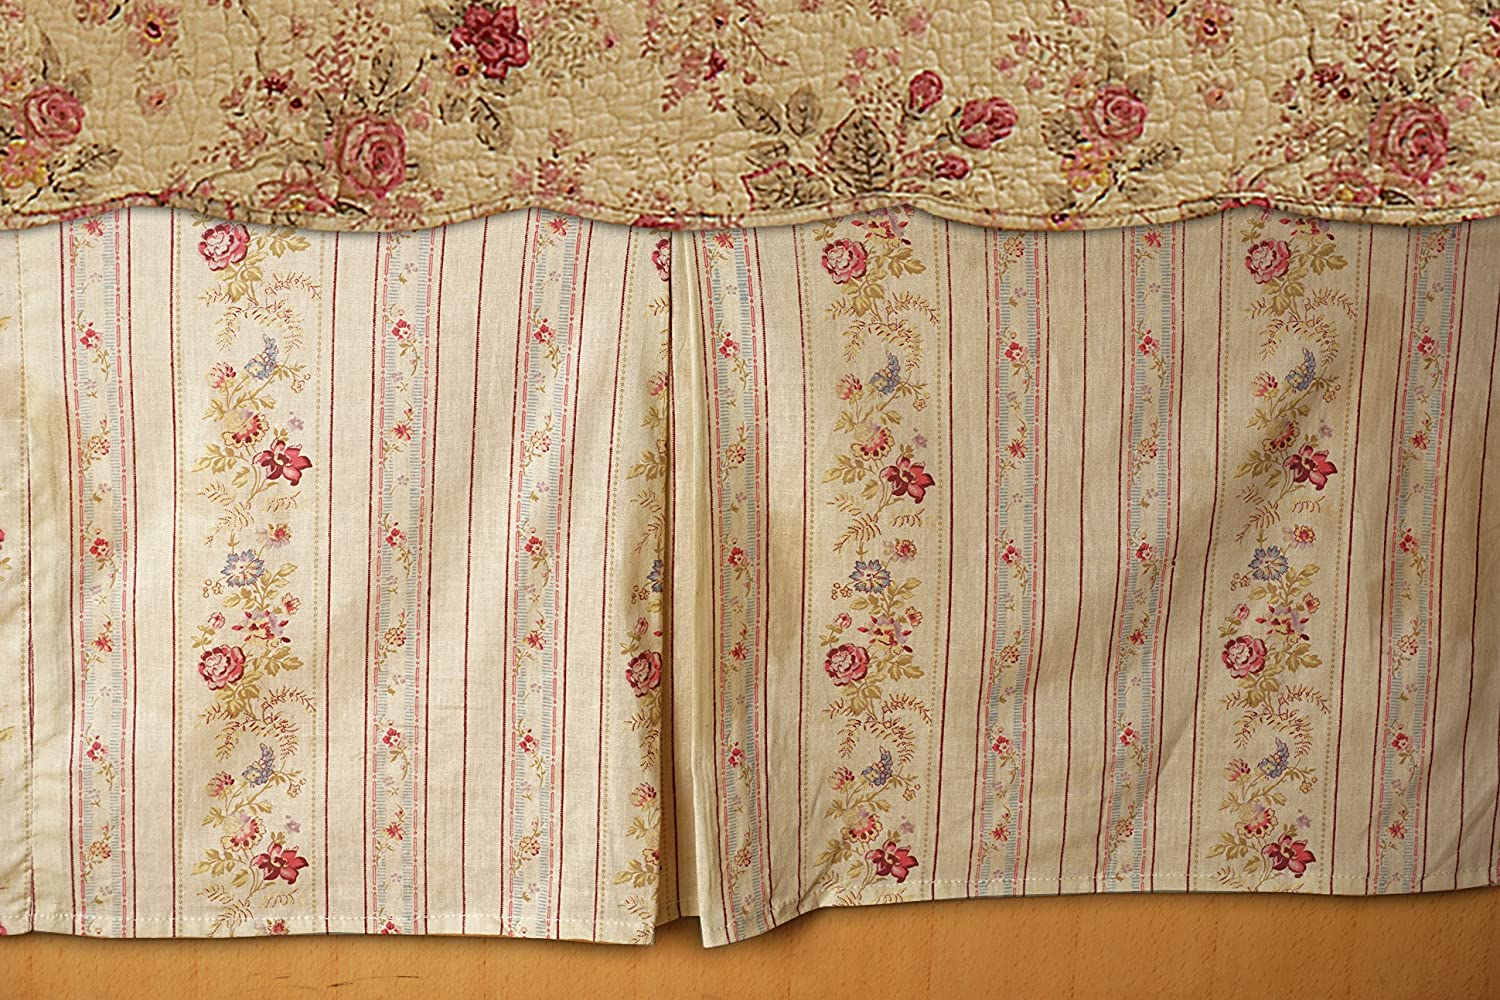 Greenland Home GL-WB0726-BSKQ Antique Rose Bed Skirt, Queen